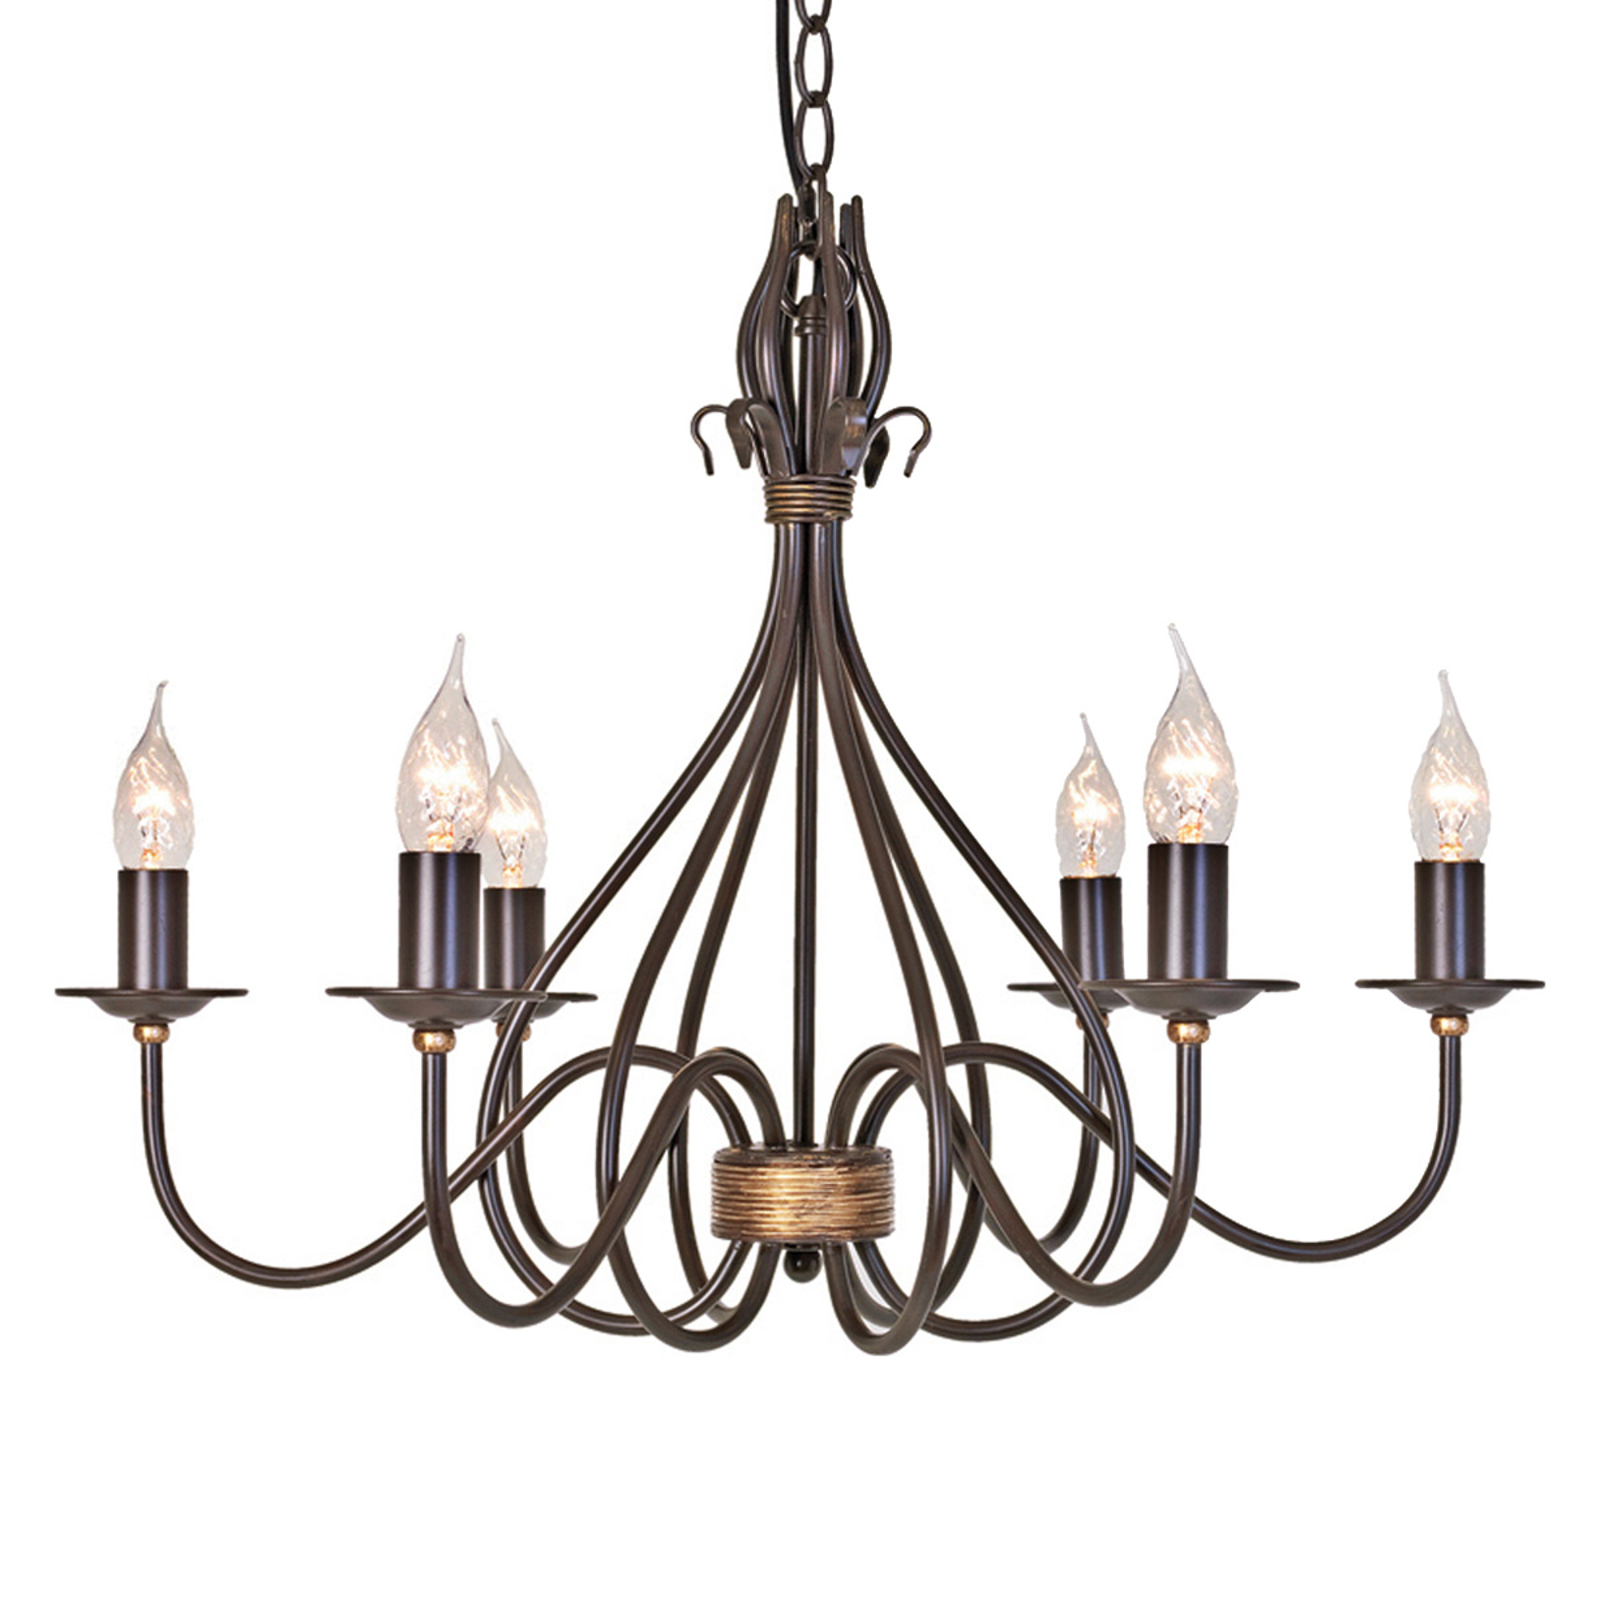 Windermere chandelier with six bulbs_3048043_1